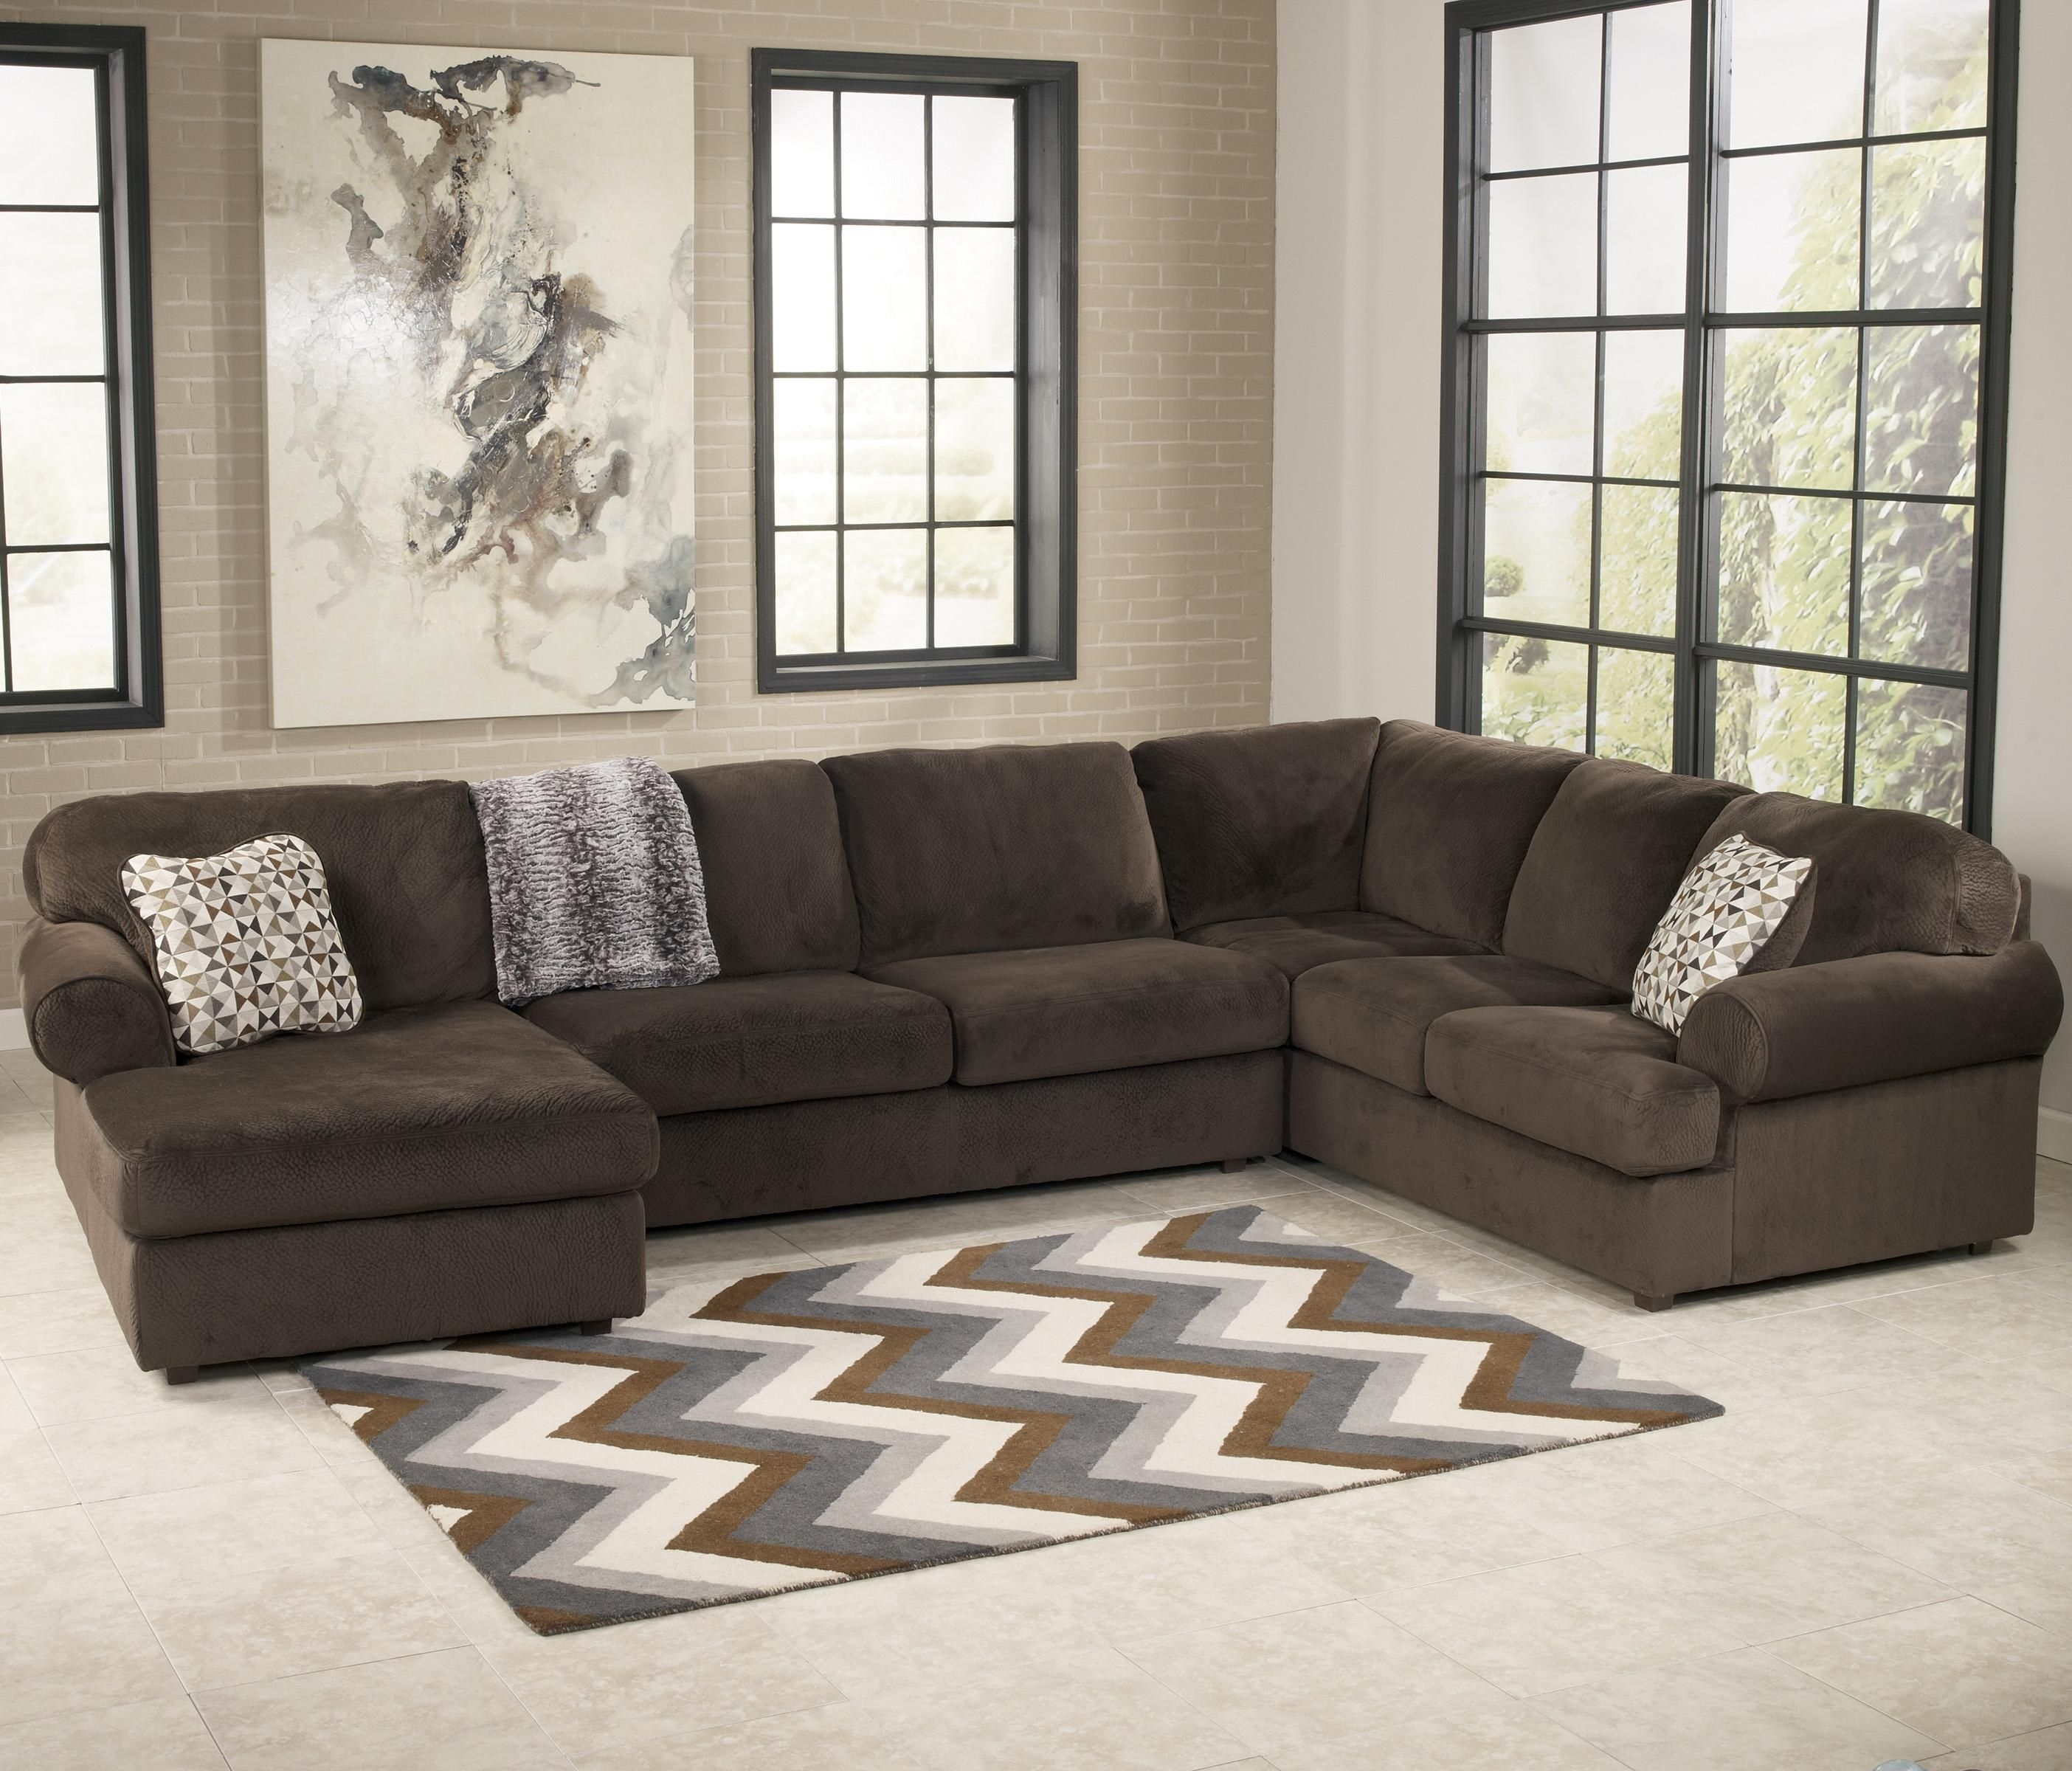 Sectional Sofas Austin Sleeper Sofa Tx Texas Leather Stock Photos Hd in Austin Sectional Sofas (Image 6 of 10)